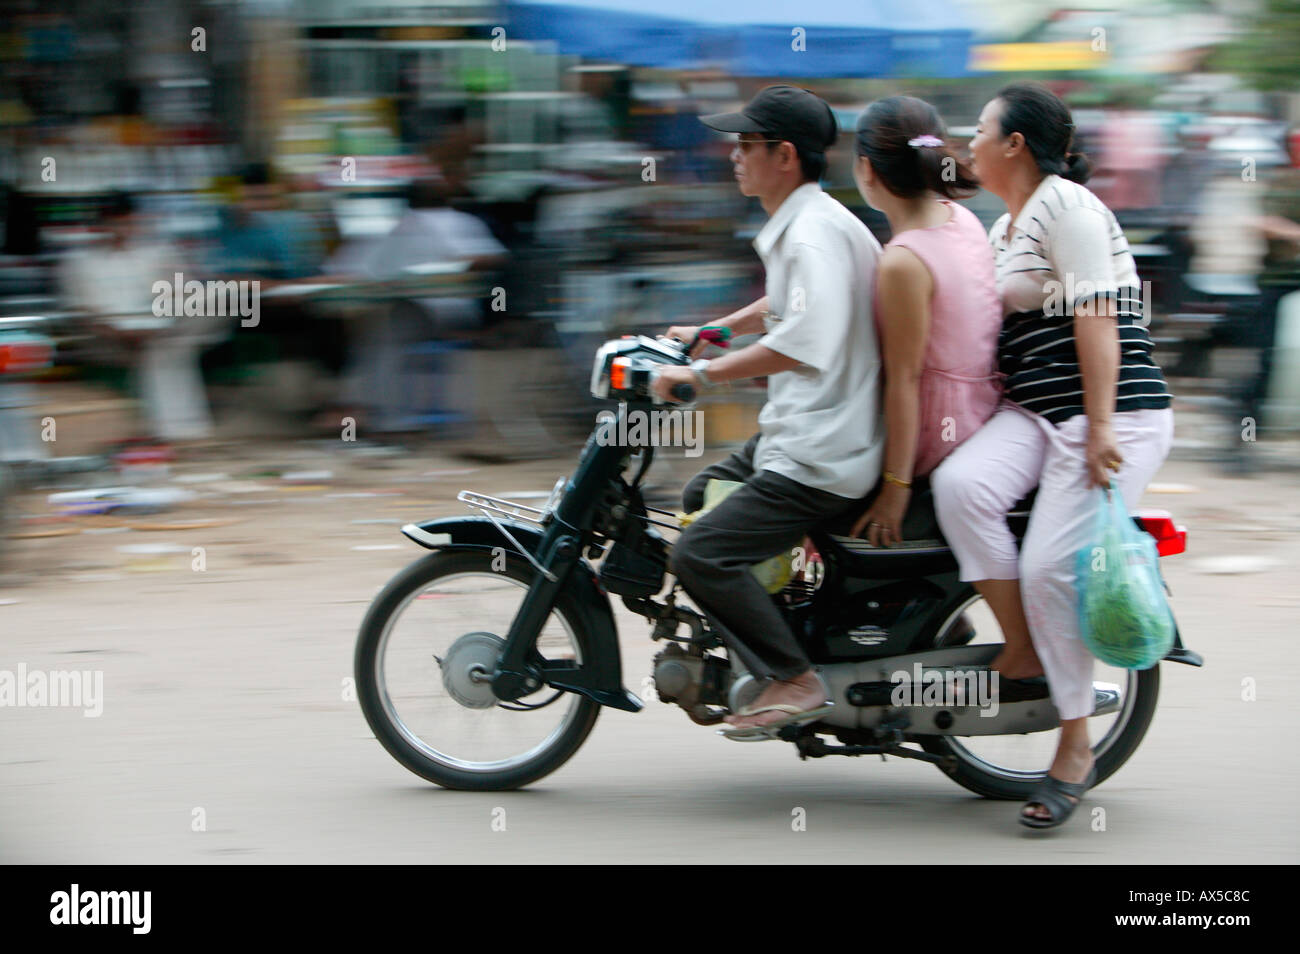 People on motorcycle Phnom Penh Cambodia Asia - Stock Image